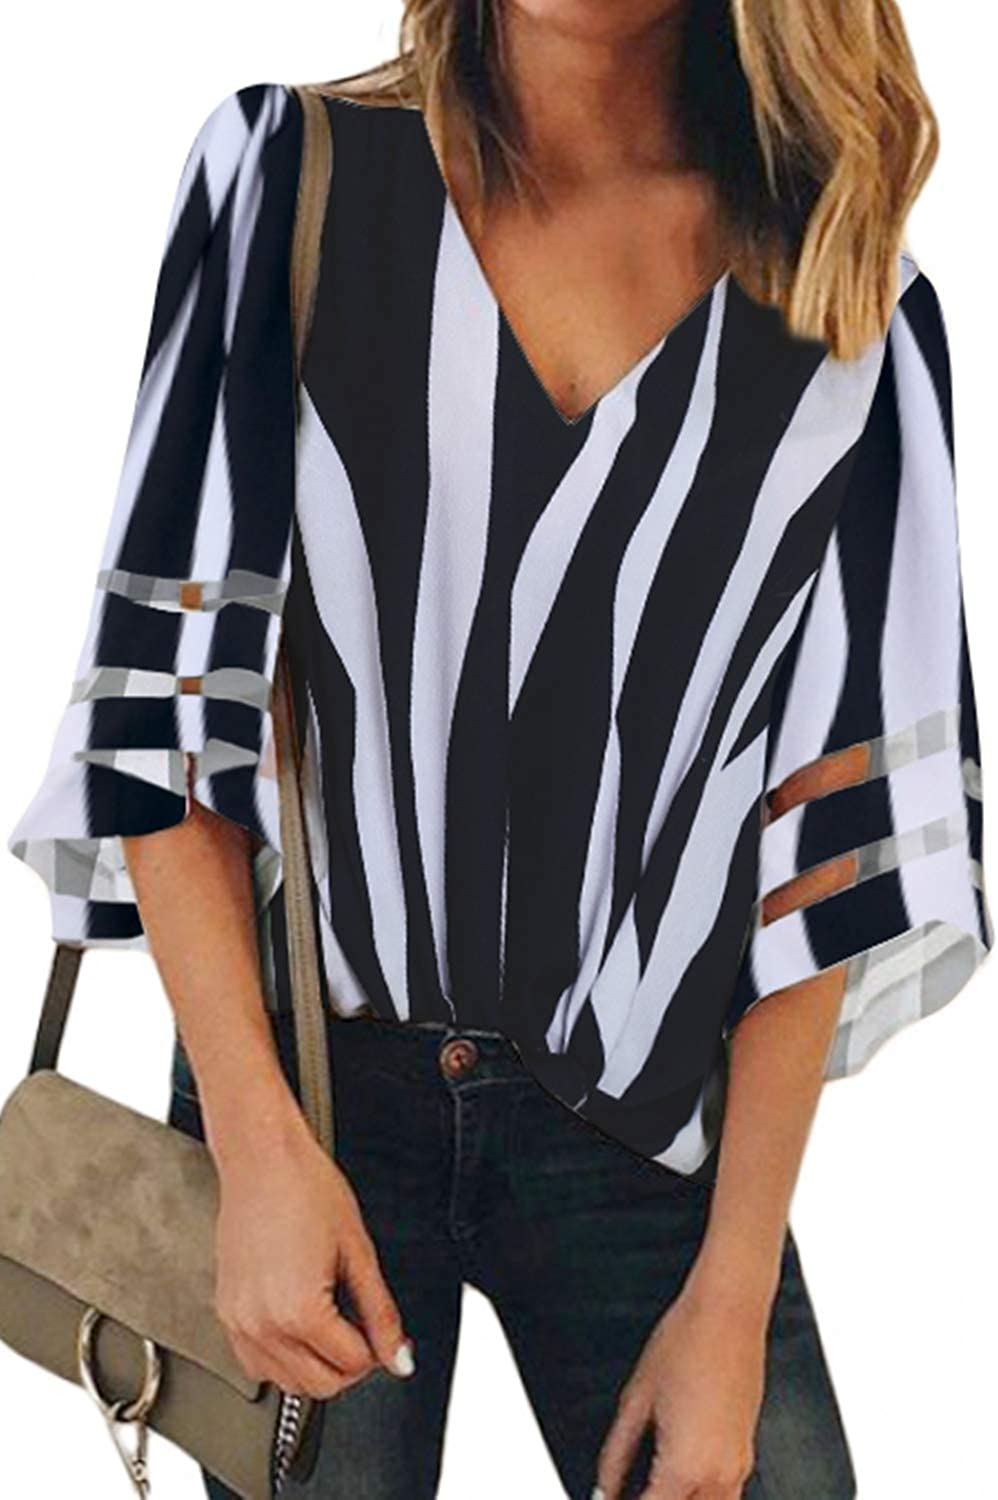 Roskiky Womens 3//4 Bell Sleeve V Neck Blouse Mesh Panel Loose Casual Tops Shirt